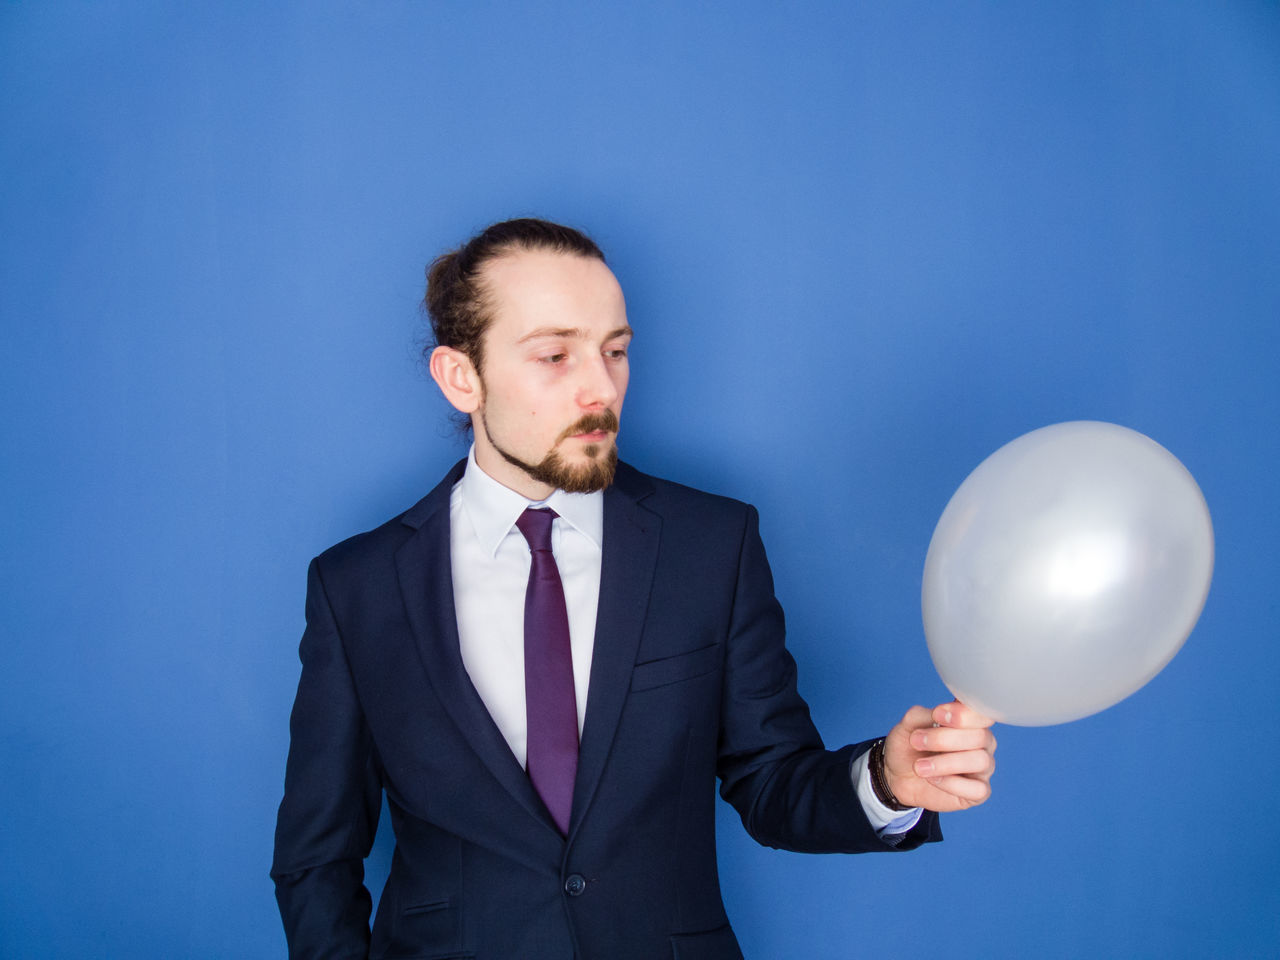 Young handsome bearded man in a suit looking at white balloon. Balloon Beard Blowing Up Balloon Blue Blue Background Business Business Finance And Industry Businessman Carefree Confidence  Economy Elegant Flower Helium Balloon Holding Man Manager One Person Party Person Relax Self Portrait Suit Well-dressed Young Adult